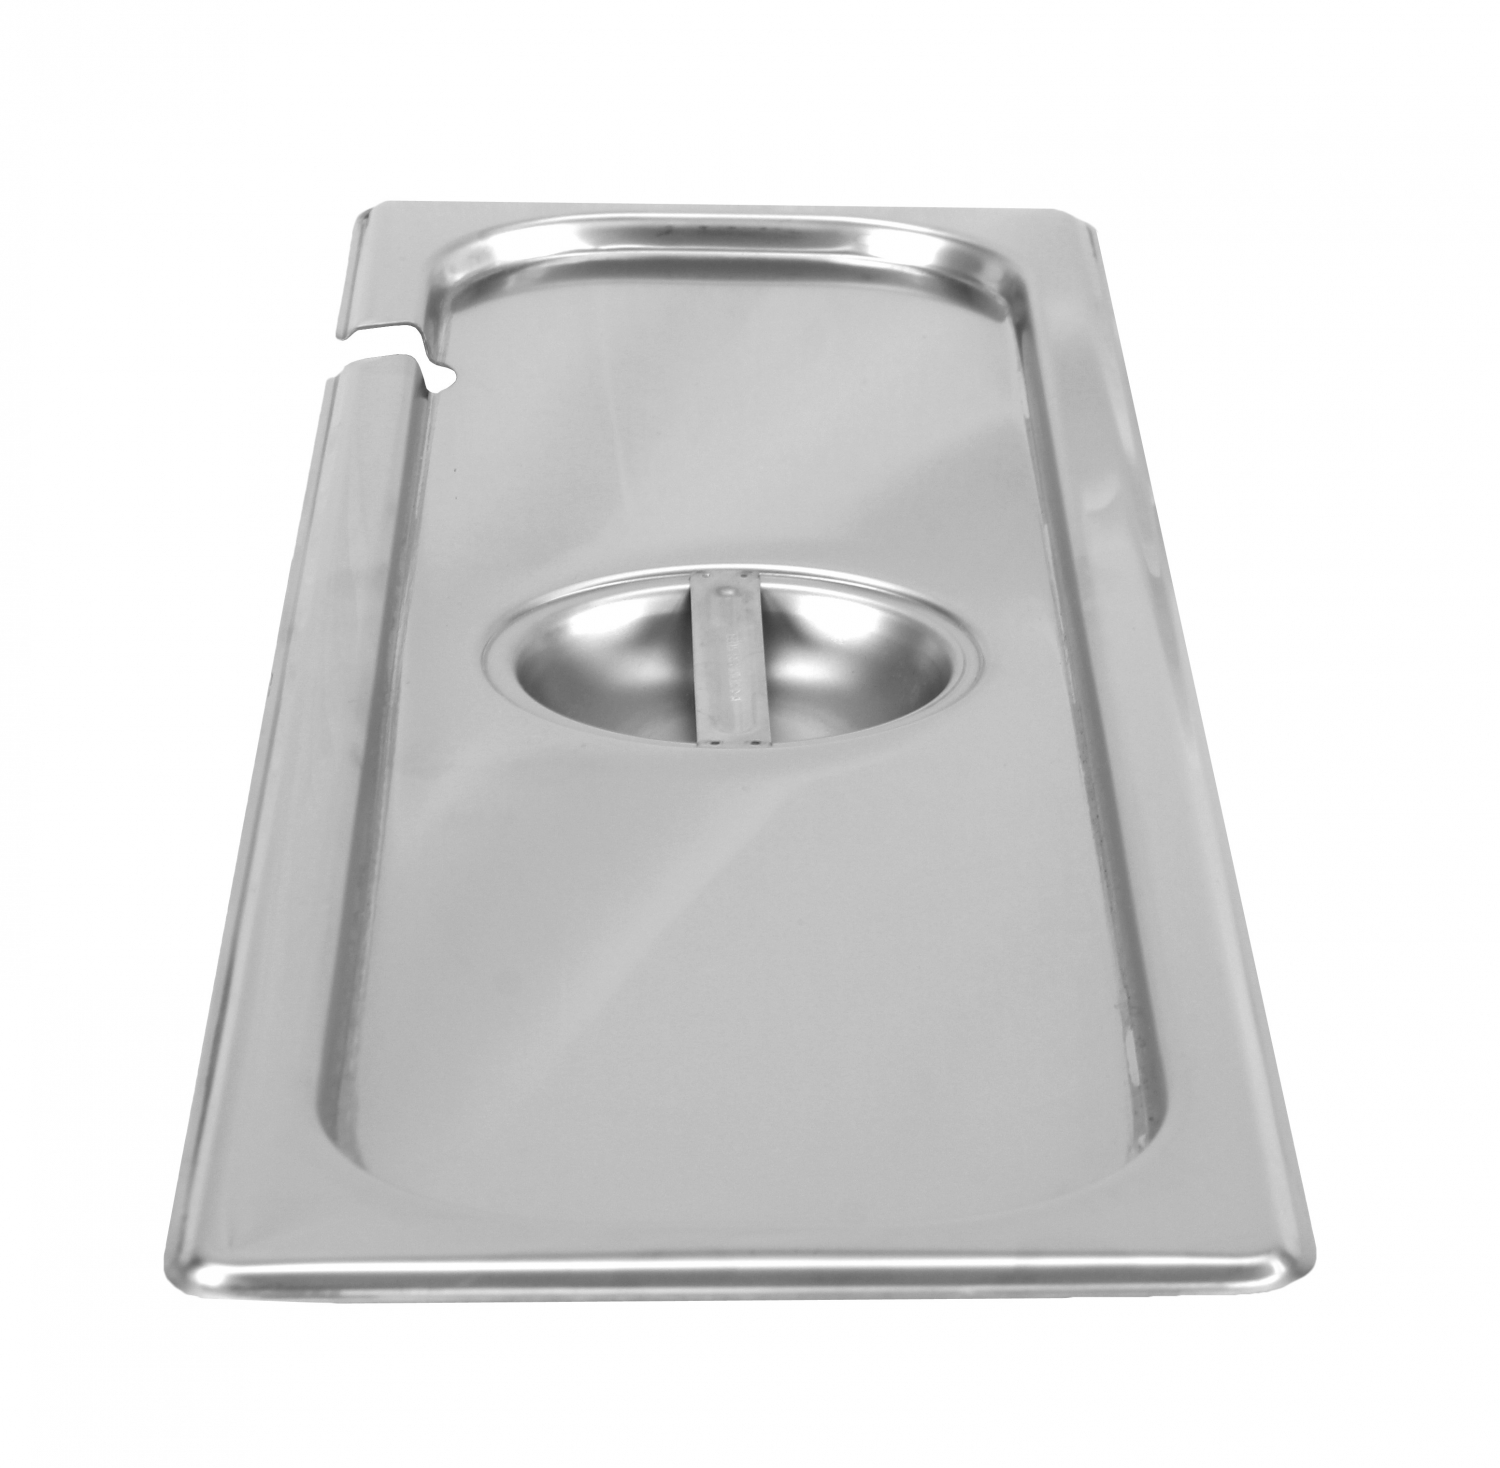 Thunder Group STPA7120CSL Half Size Slotted Cover For Steam Pan